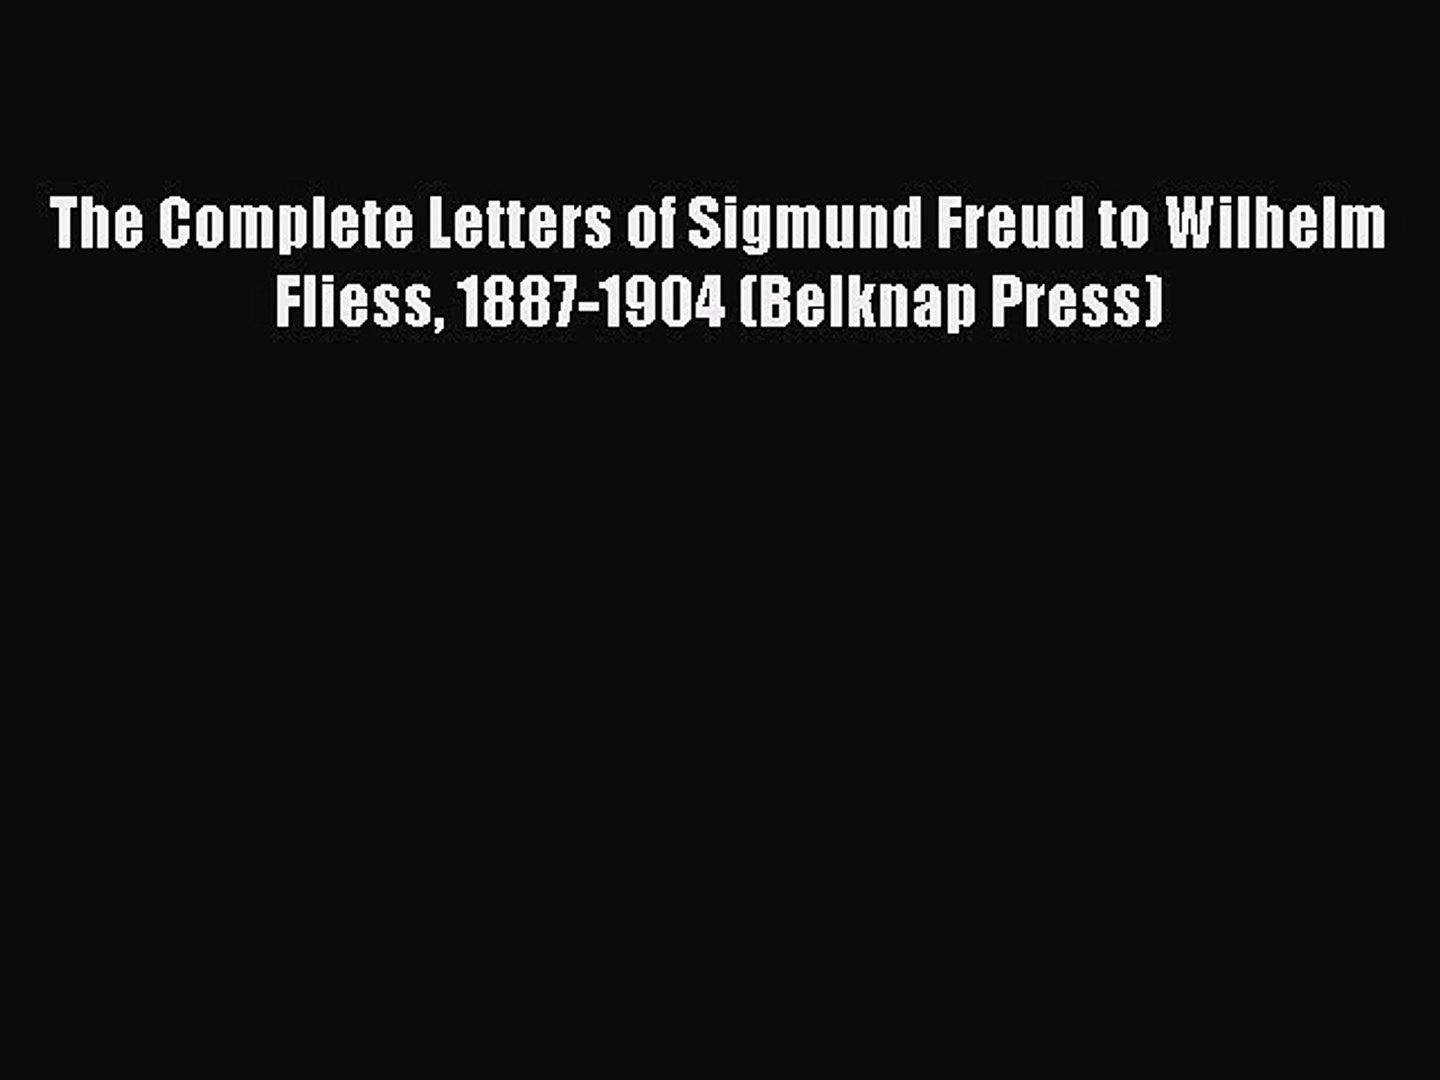 1887-1904 The Complete Letters of Sigmund Freud to Wilhelm Fliess